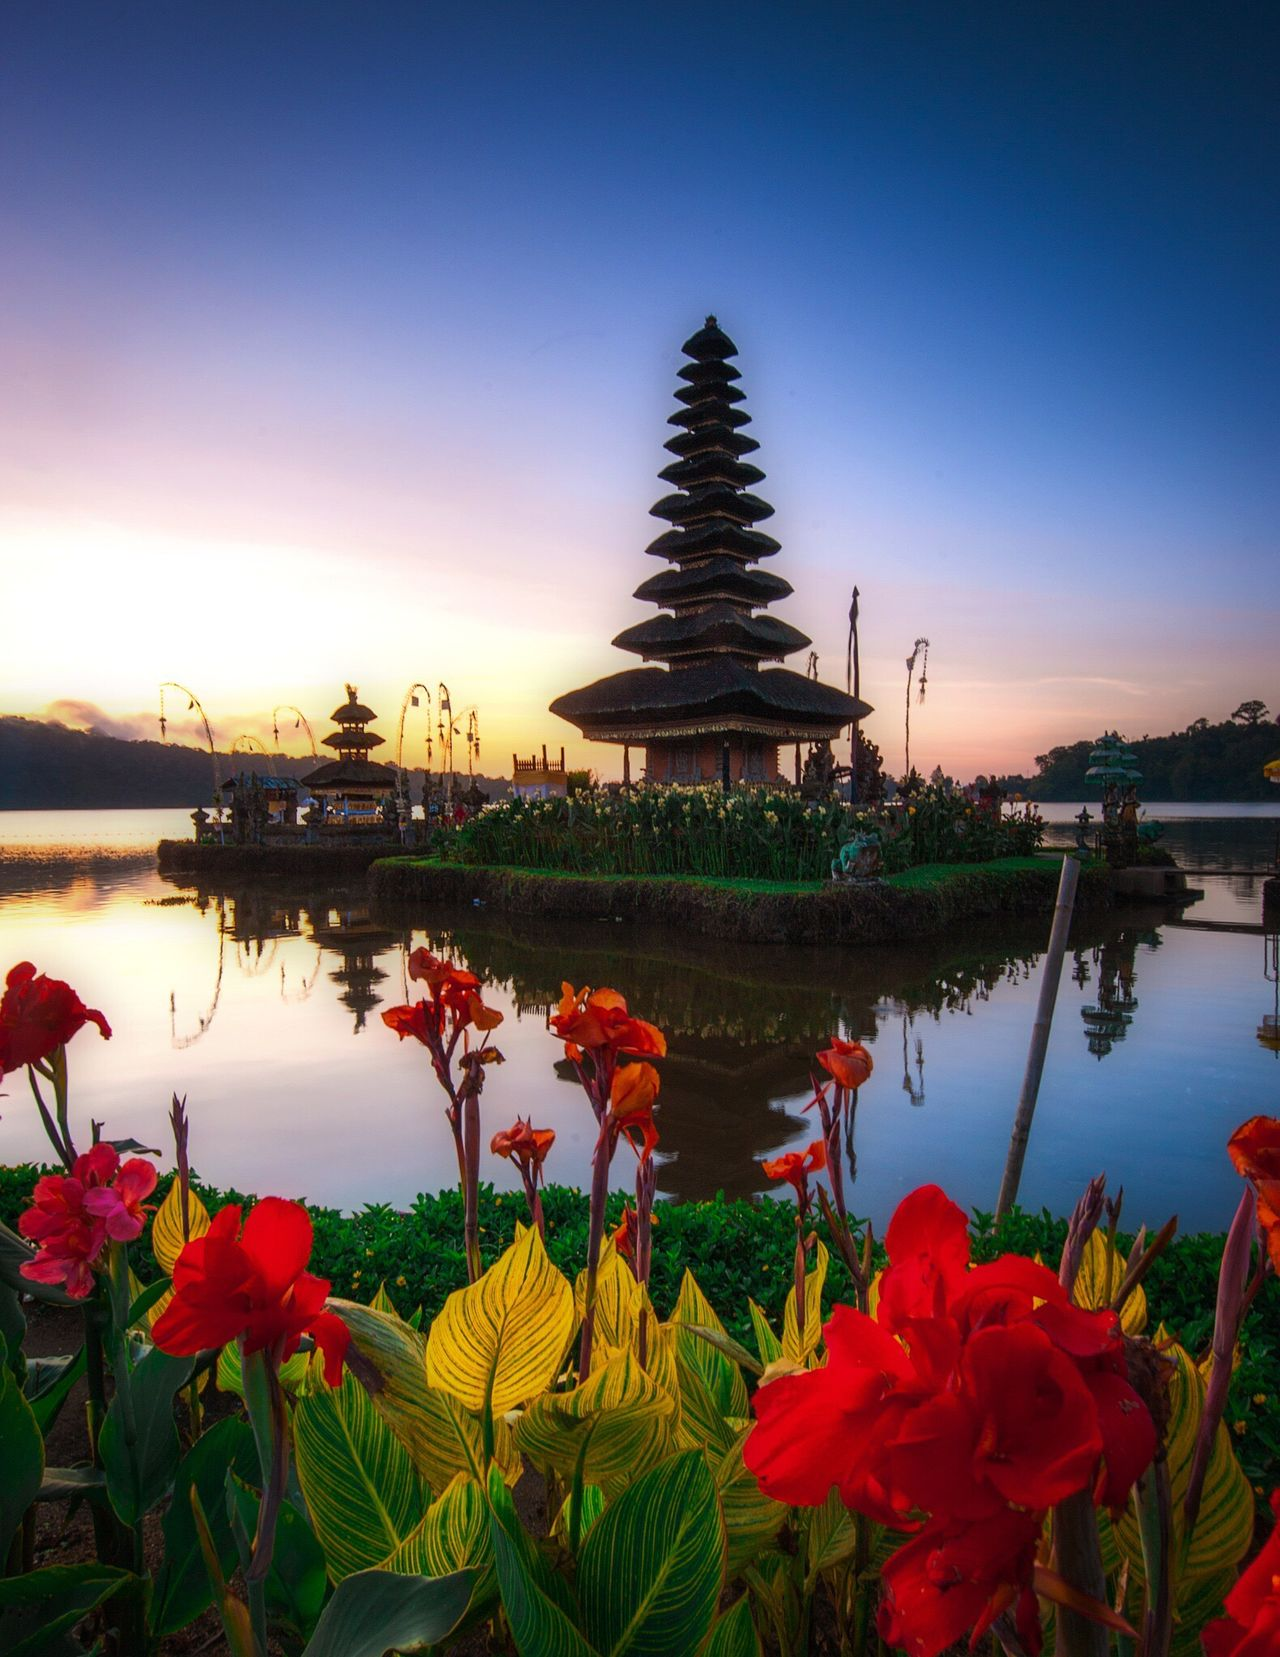 Temple Flower Nature Beauty In Nature Water Sunset Lake Sky Religion Plant Spirituality Travel Destinations Scenics No People Growth Outdoors Red Petal Flower Head Fragility Leaf Landscape_Collection EyeEmNewHere Bali